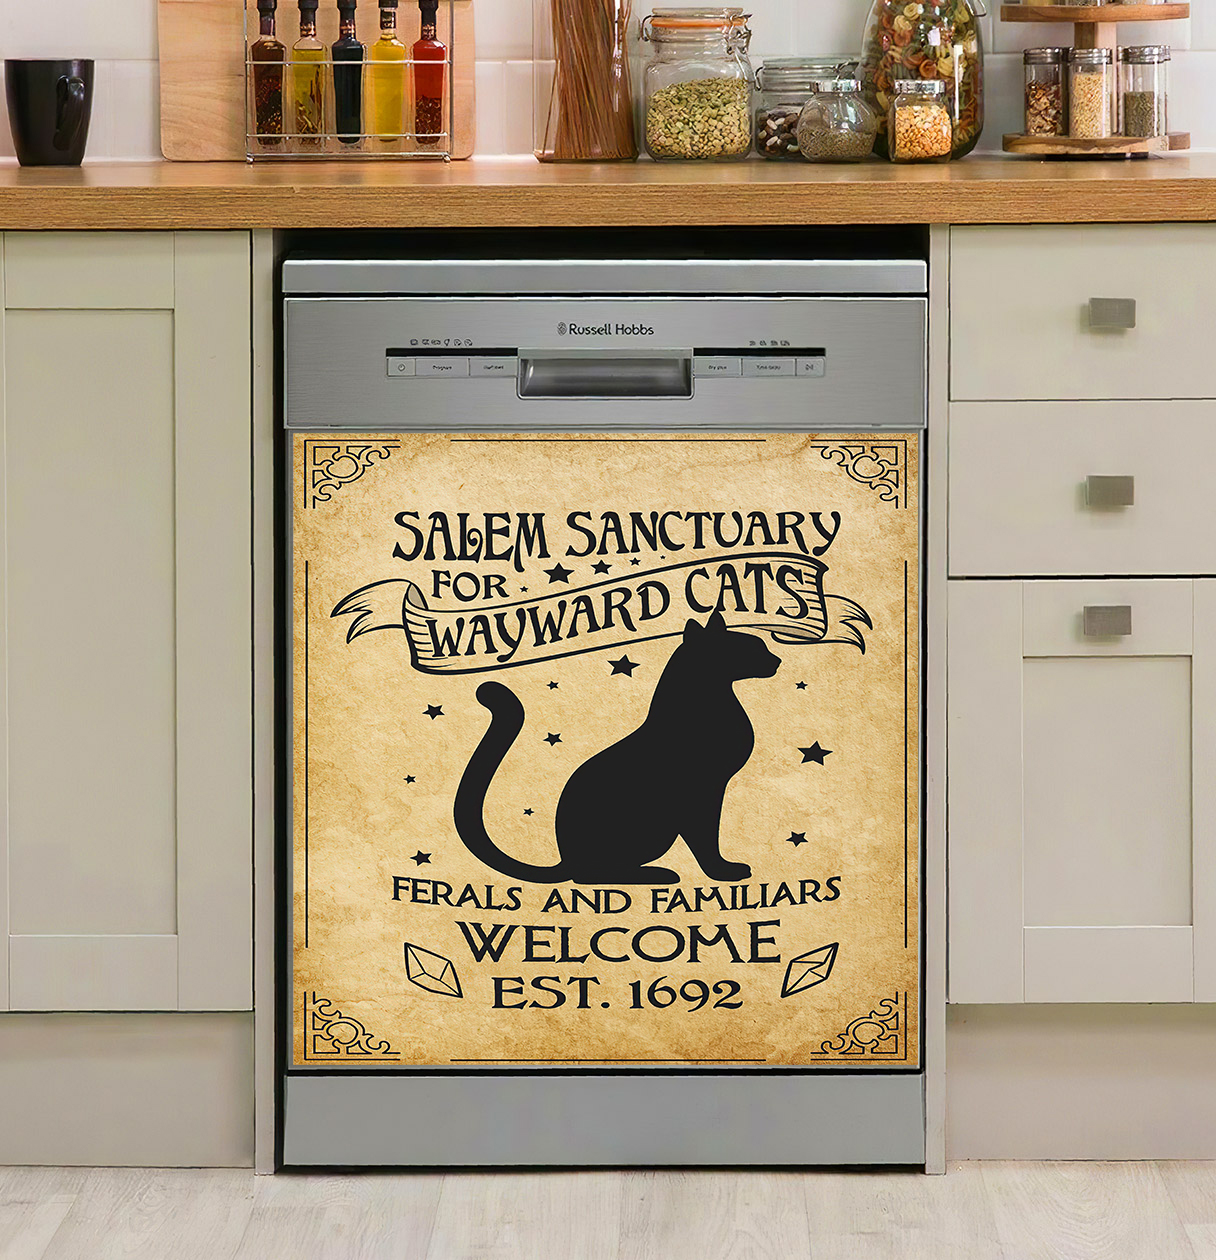 Salem Sanctuary For Wayward Cats Ferals And Familiars Welcome Est. 1692 Black Cat Witch Dishwasher Cover